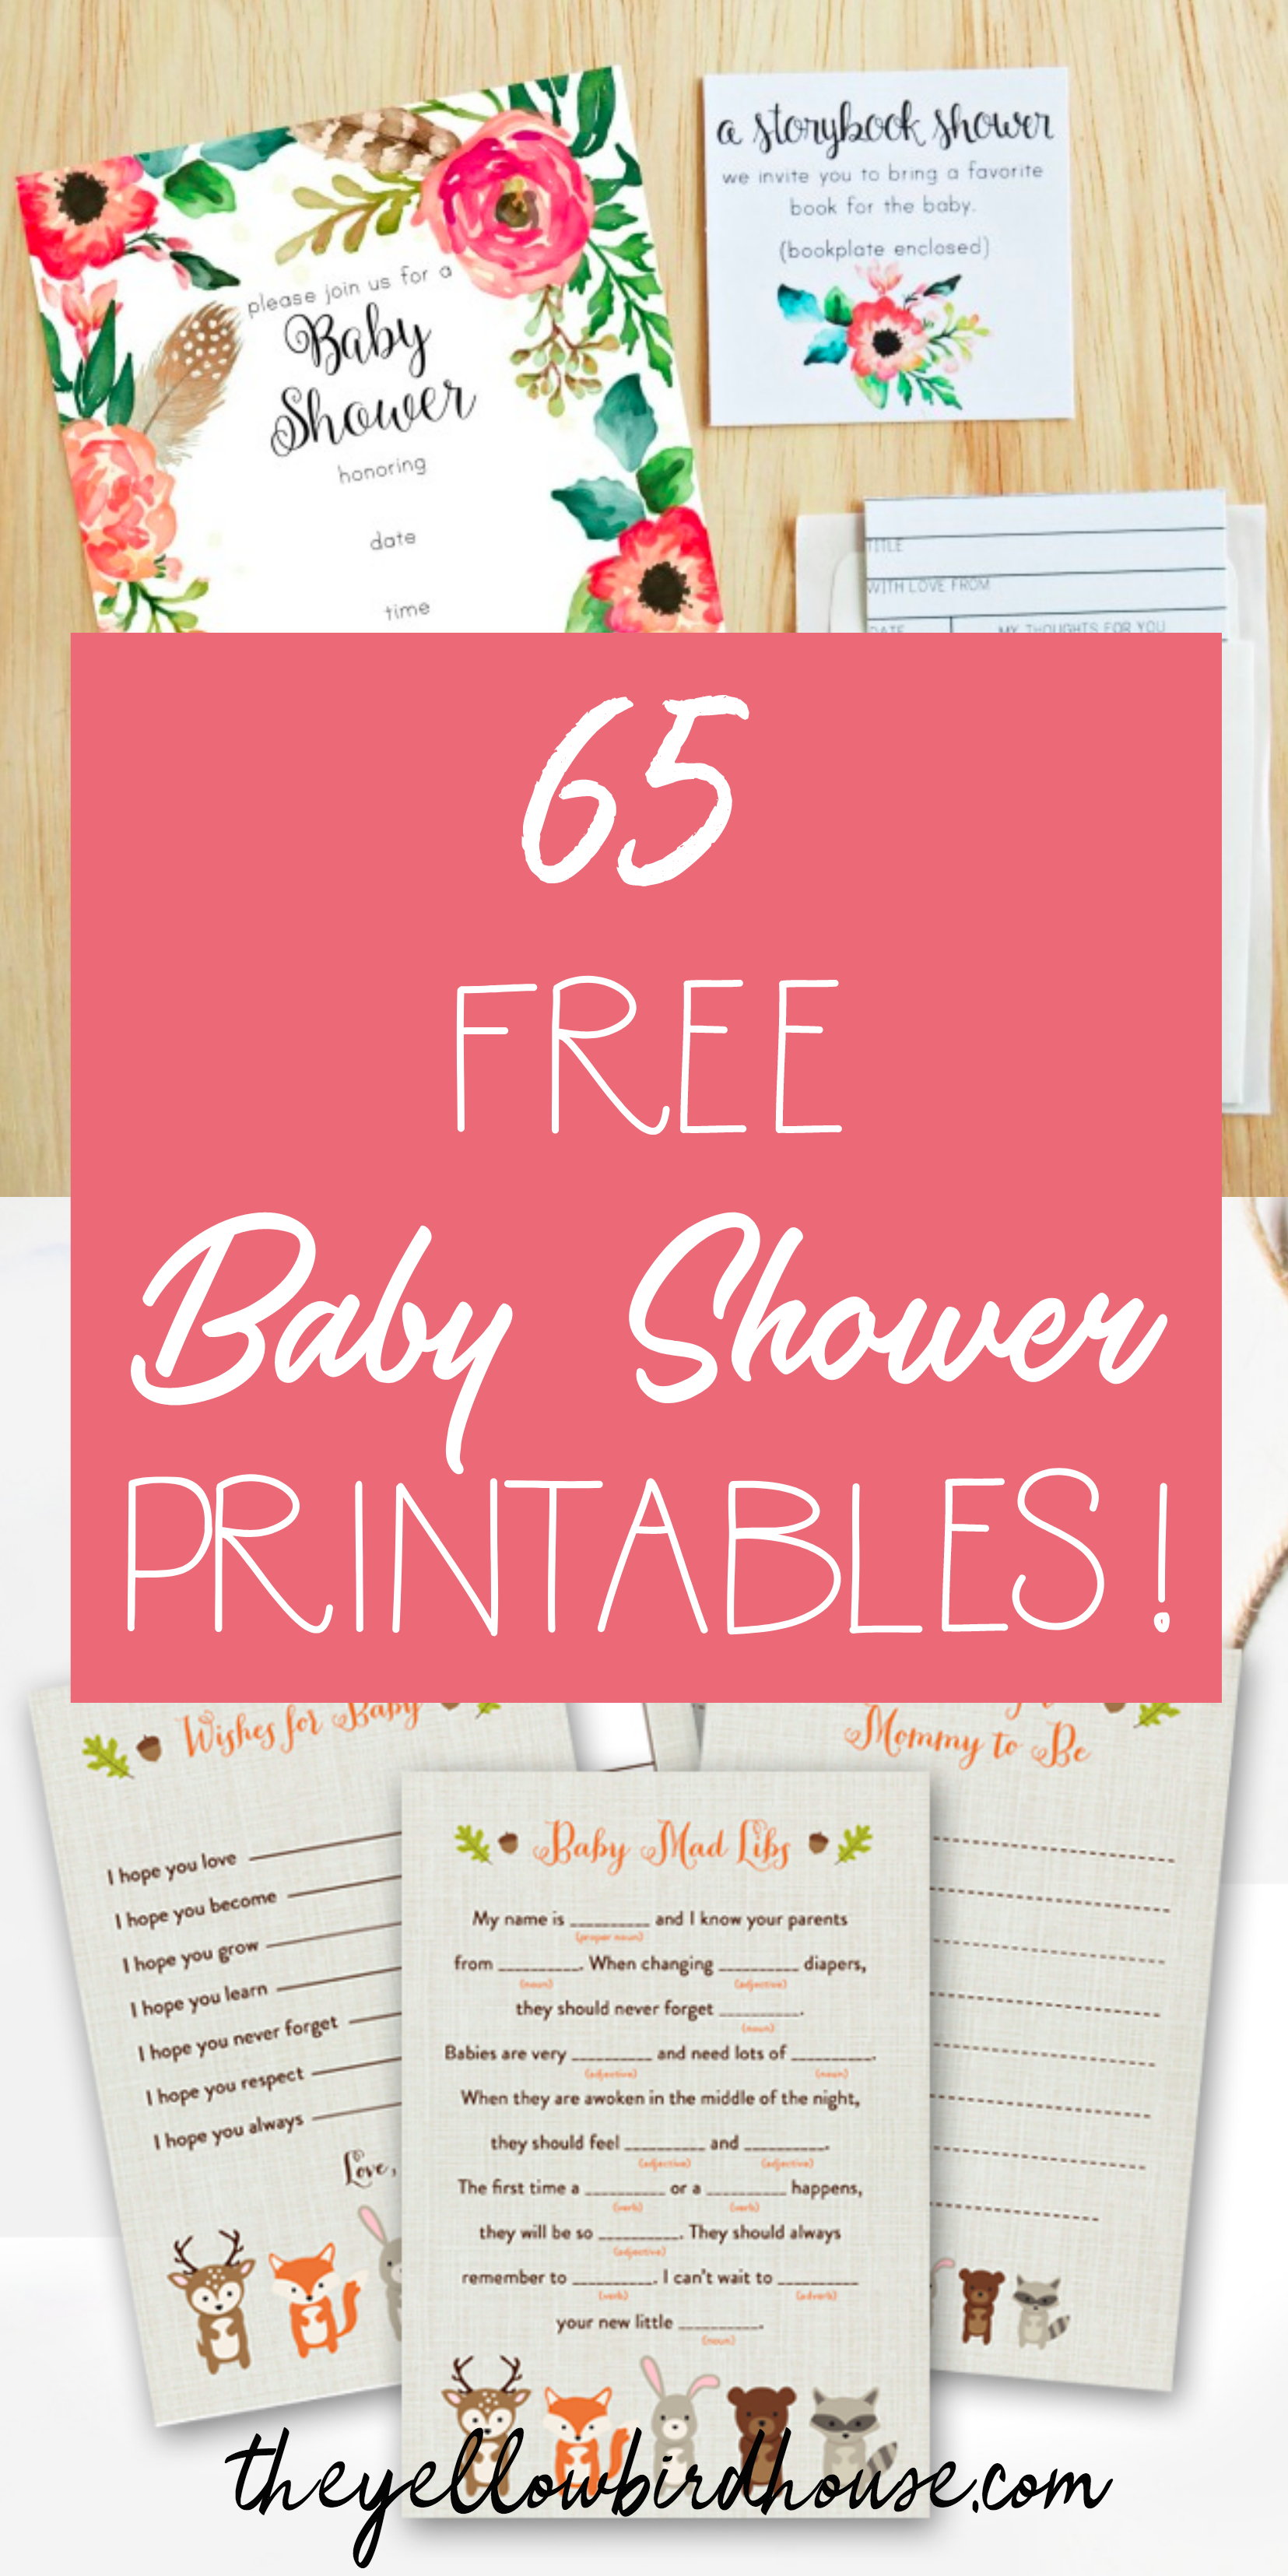 65 Free Baby Shower Printables For An Adorable Party - Free Printable Zebra Baby Shower Invitations